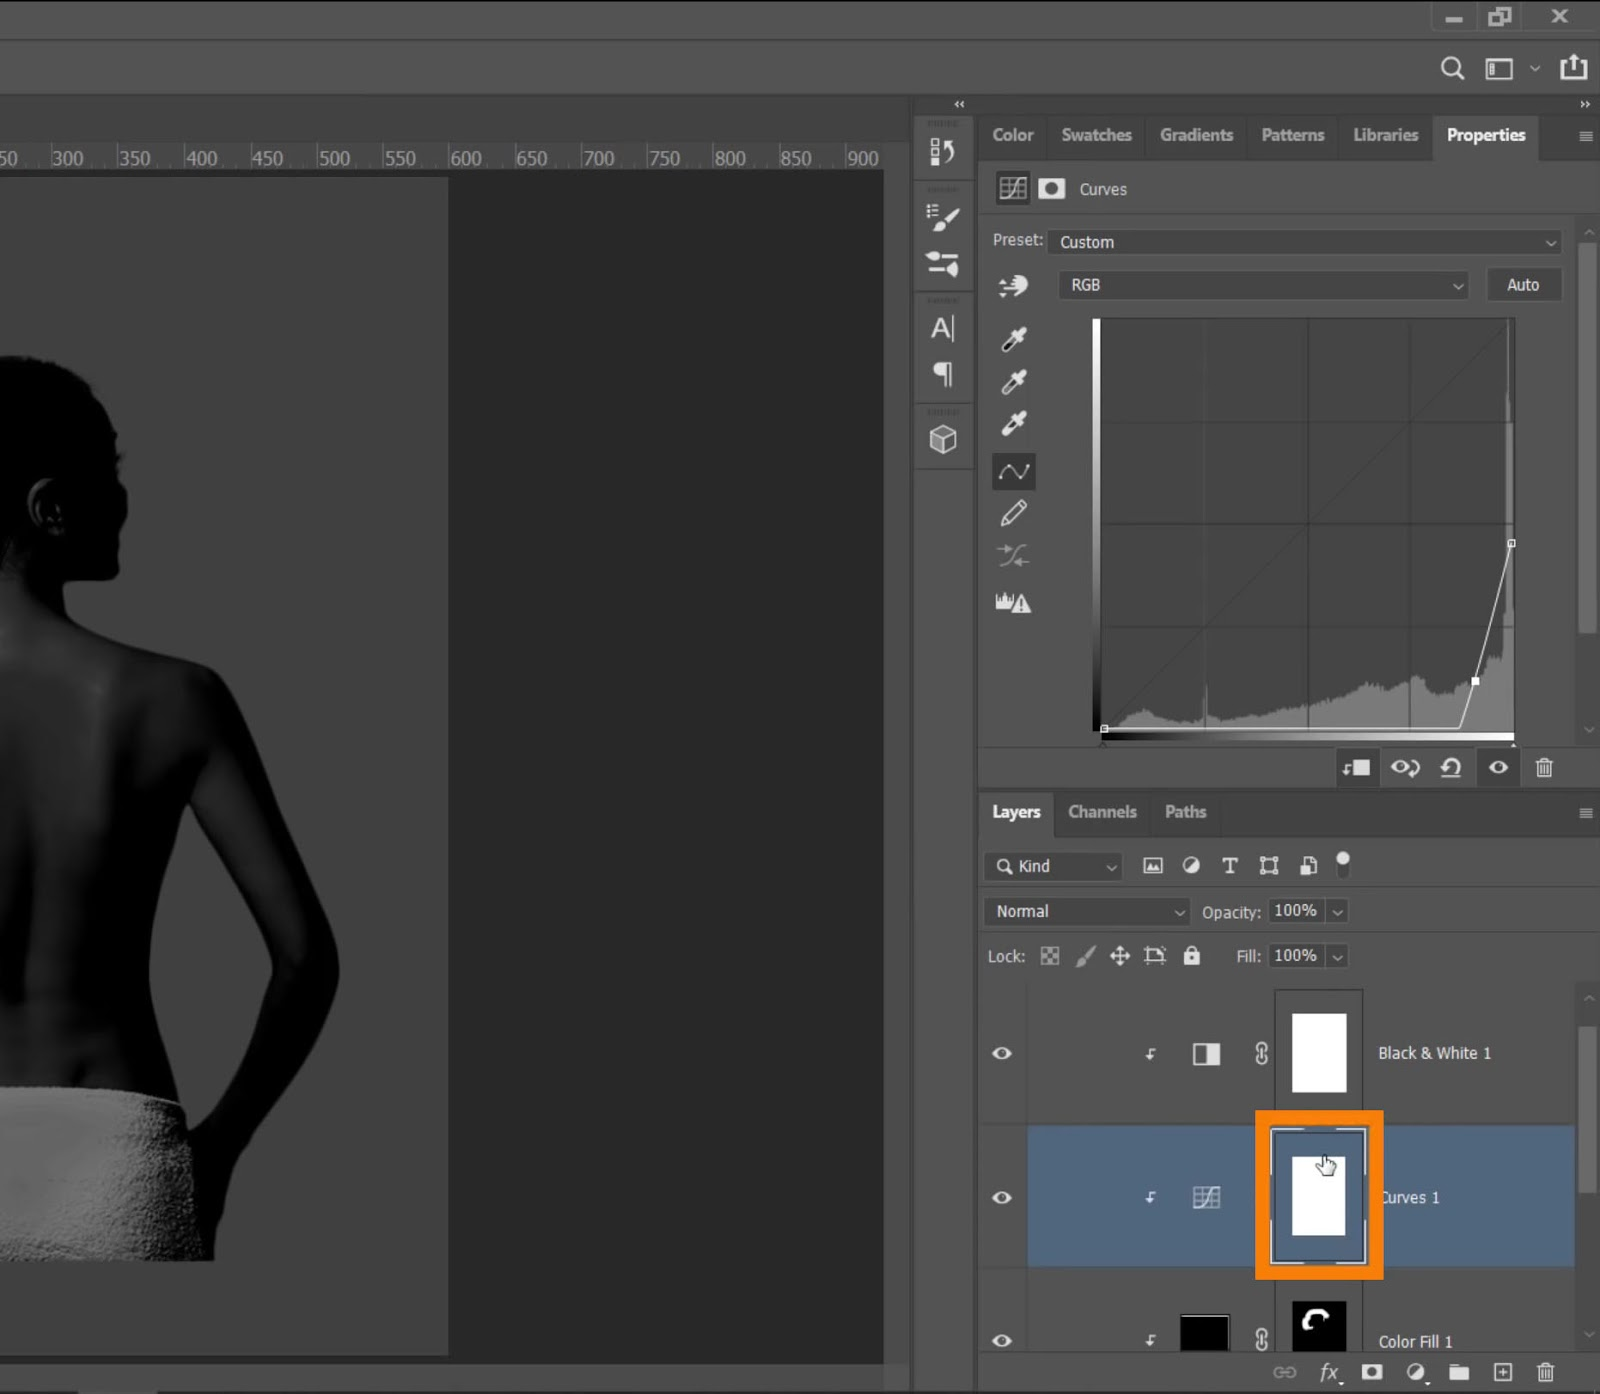 select the Curves adjustment layer mask